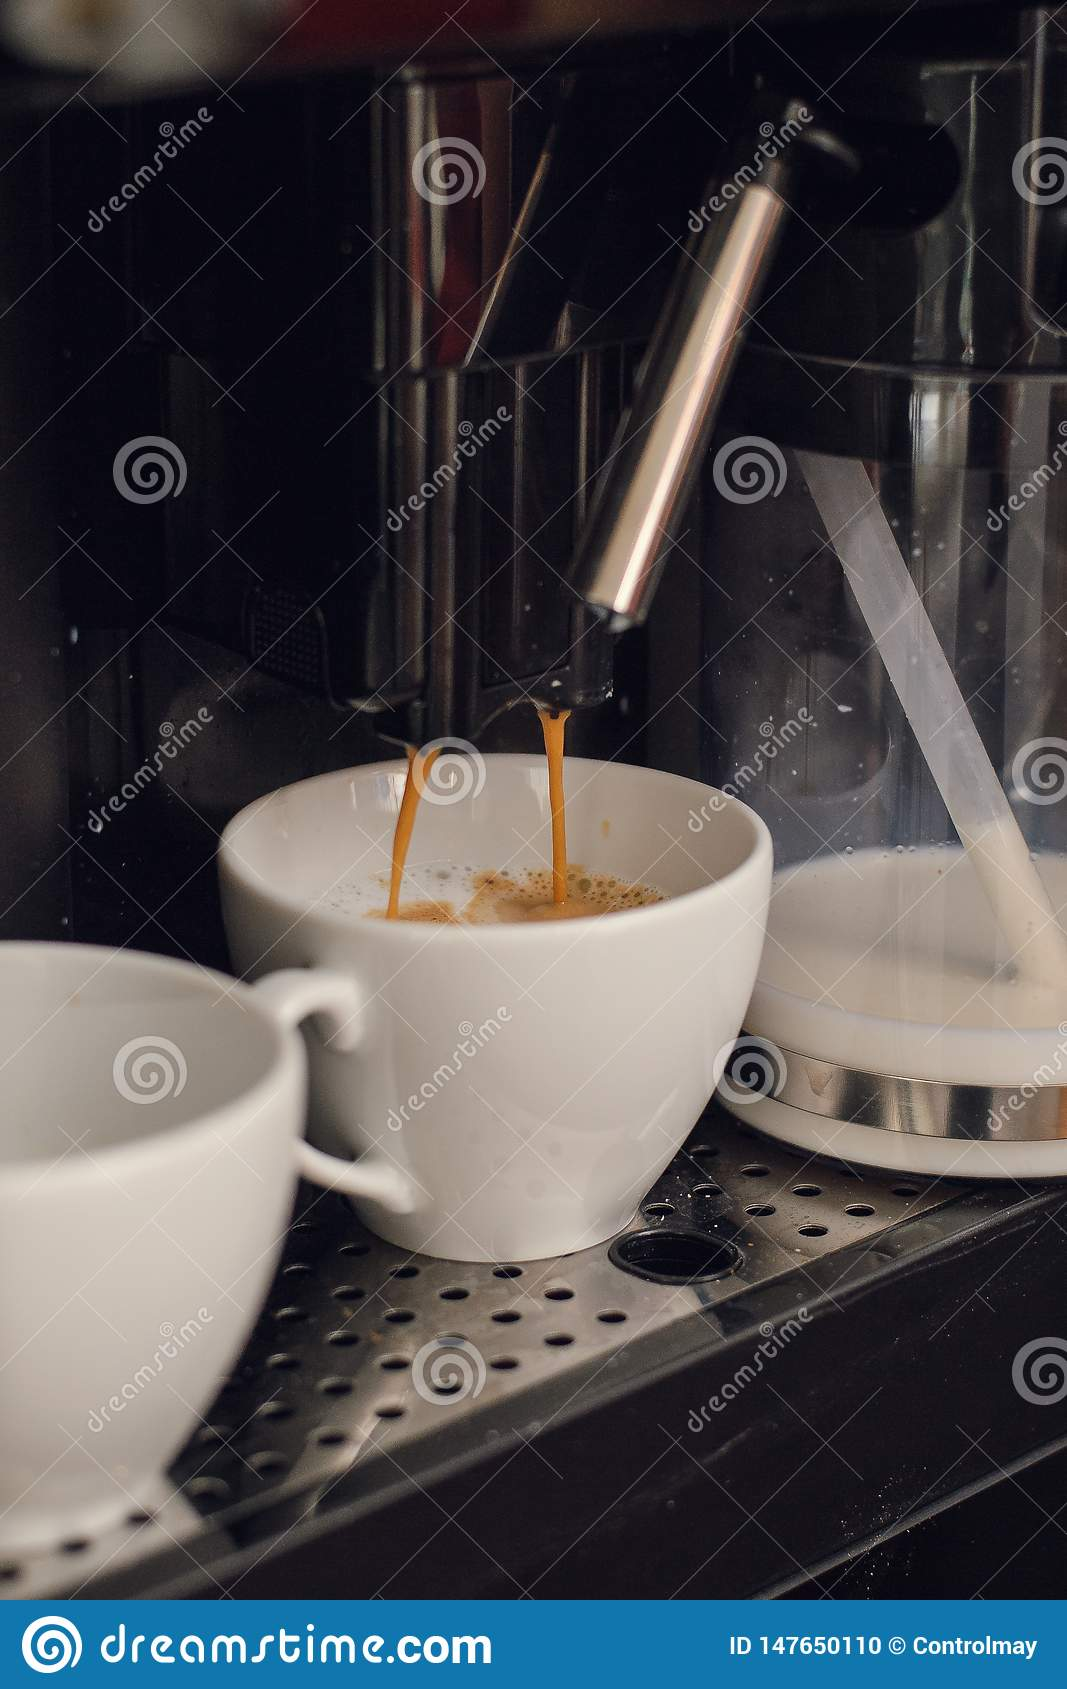 Making coffee in a coffee shop.